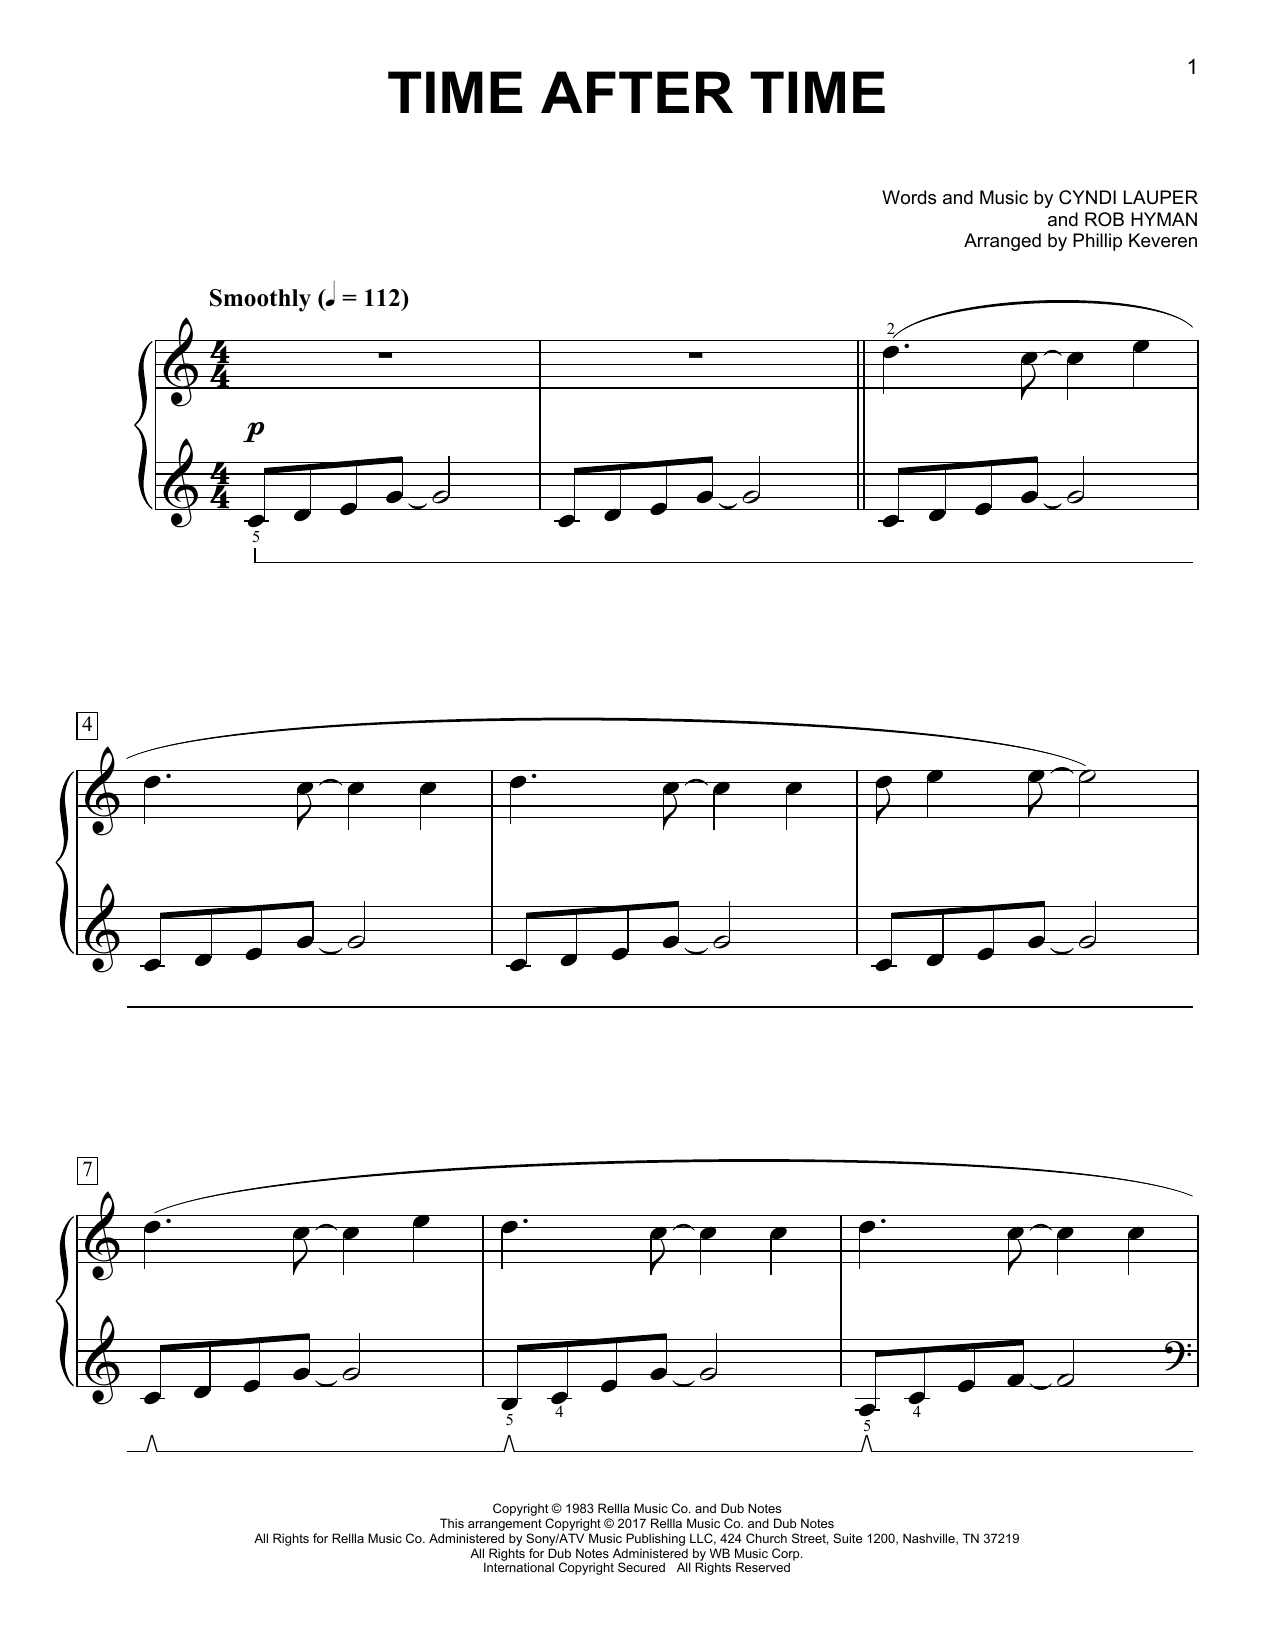 Cyndi Lauper Time After Time [Classical version] (arr. Phillip Keveren) sheet music notes and chords. Download Printable PDF.